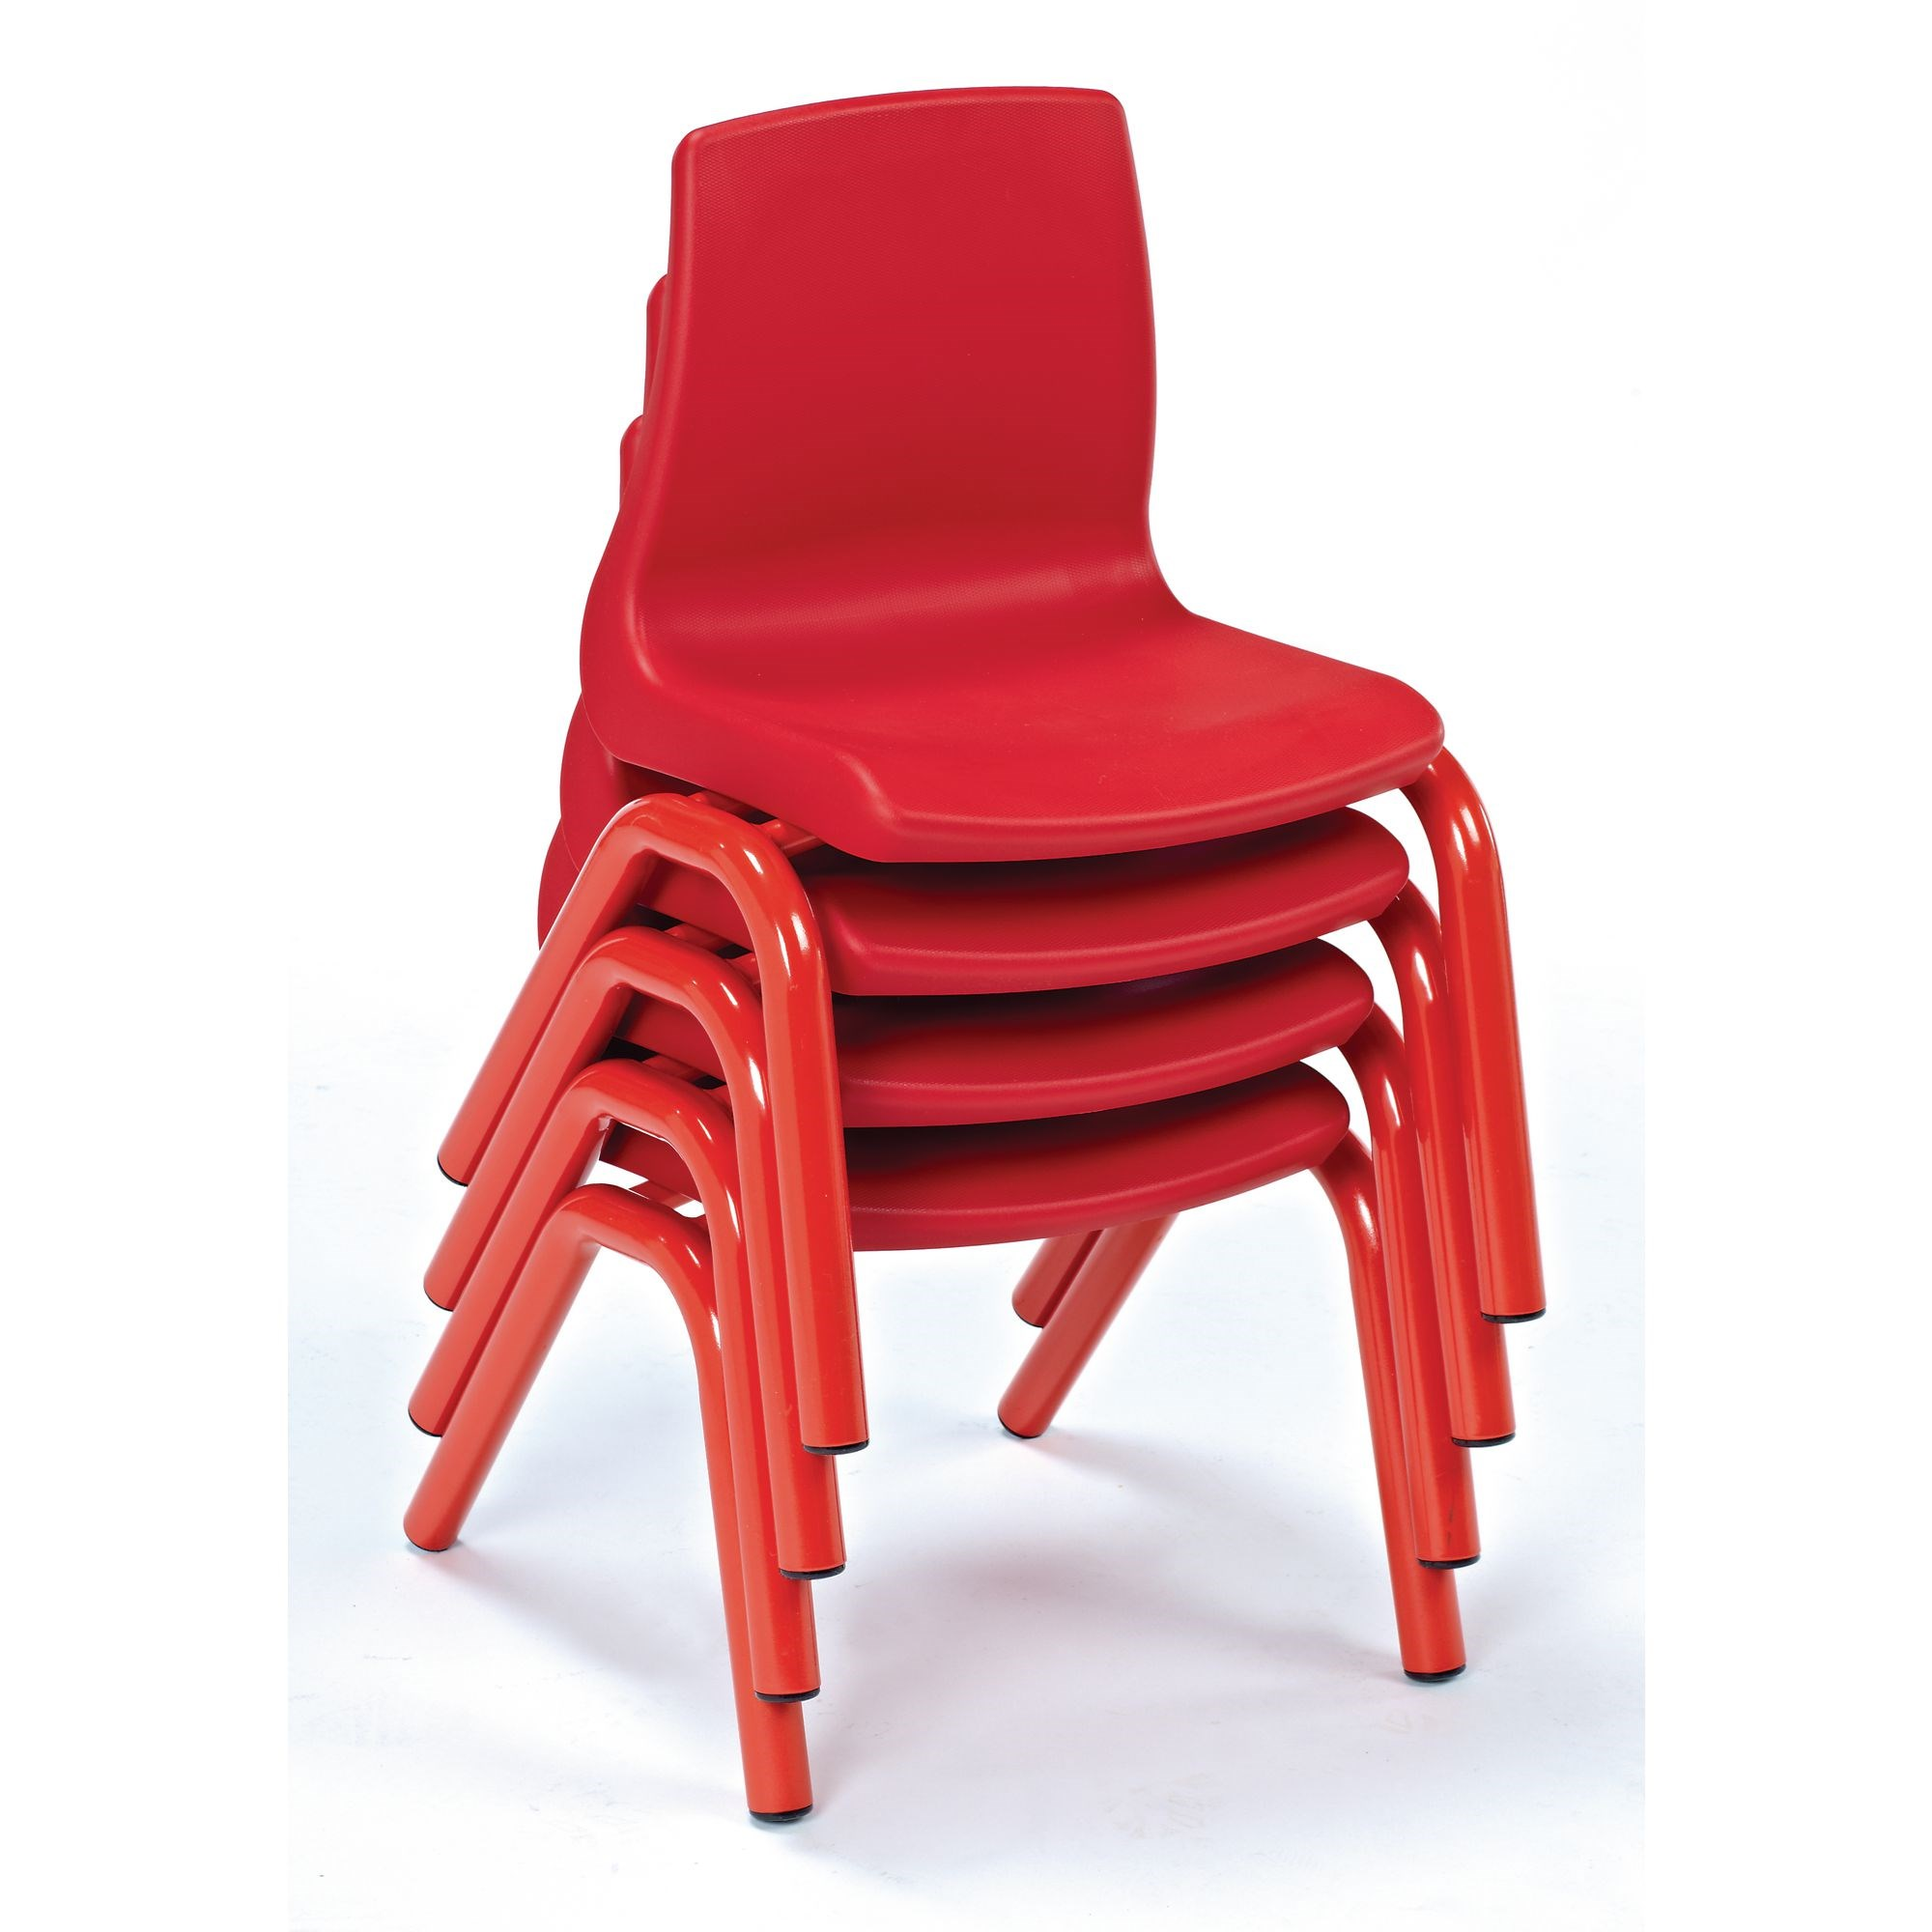 Harlequin Chairs Size A Red